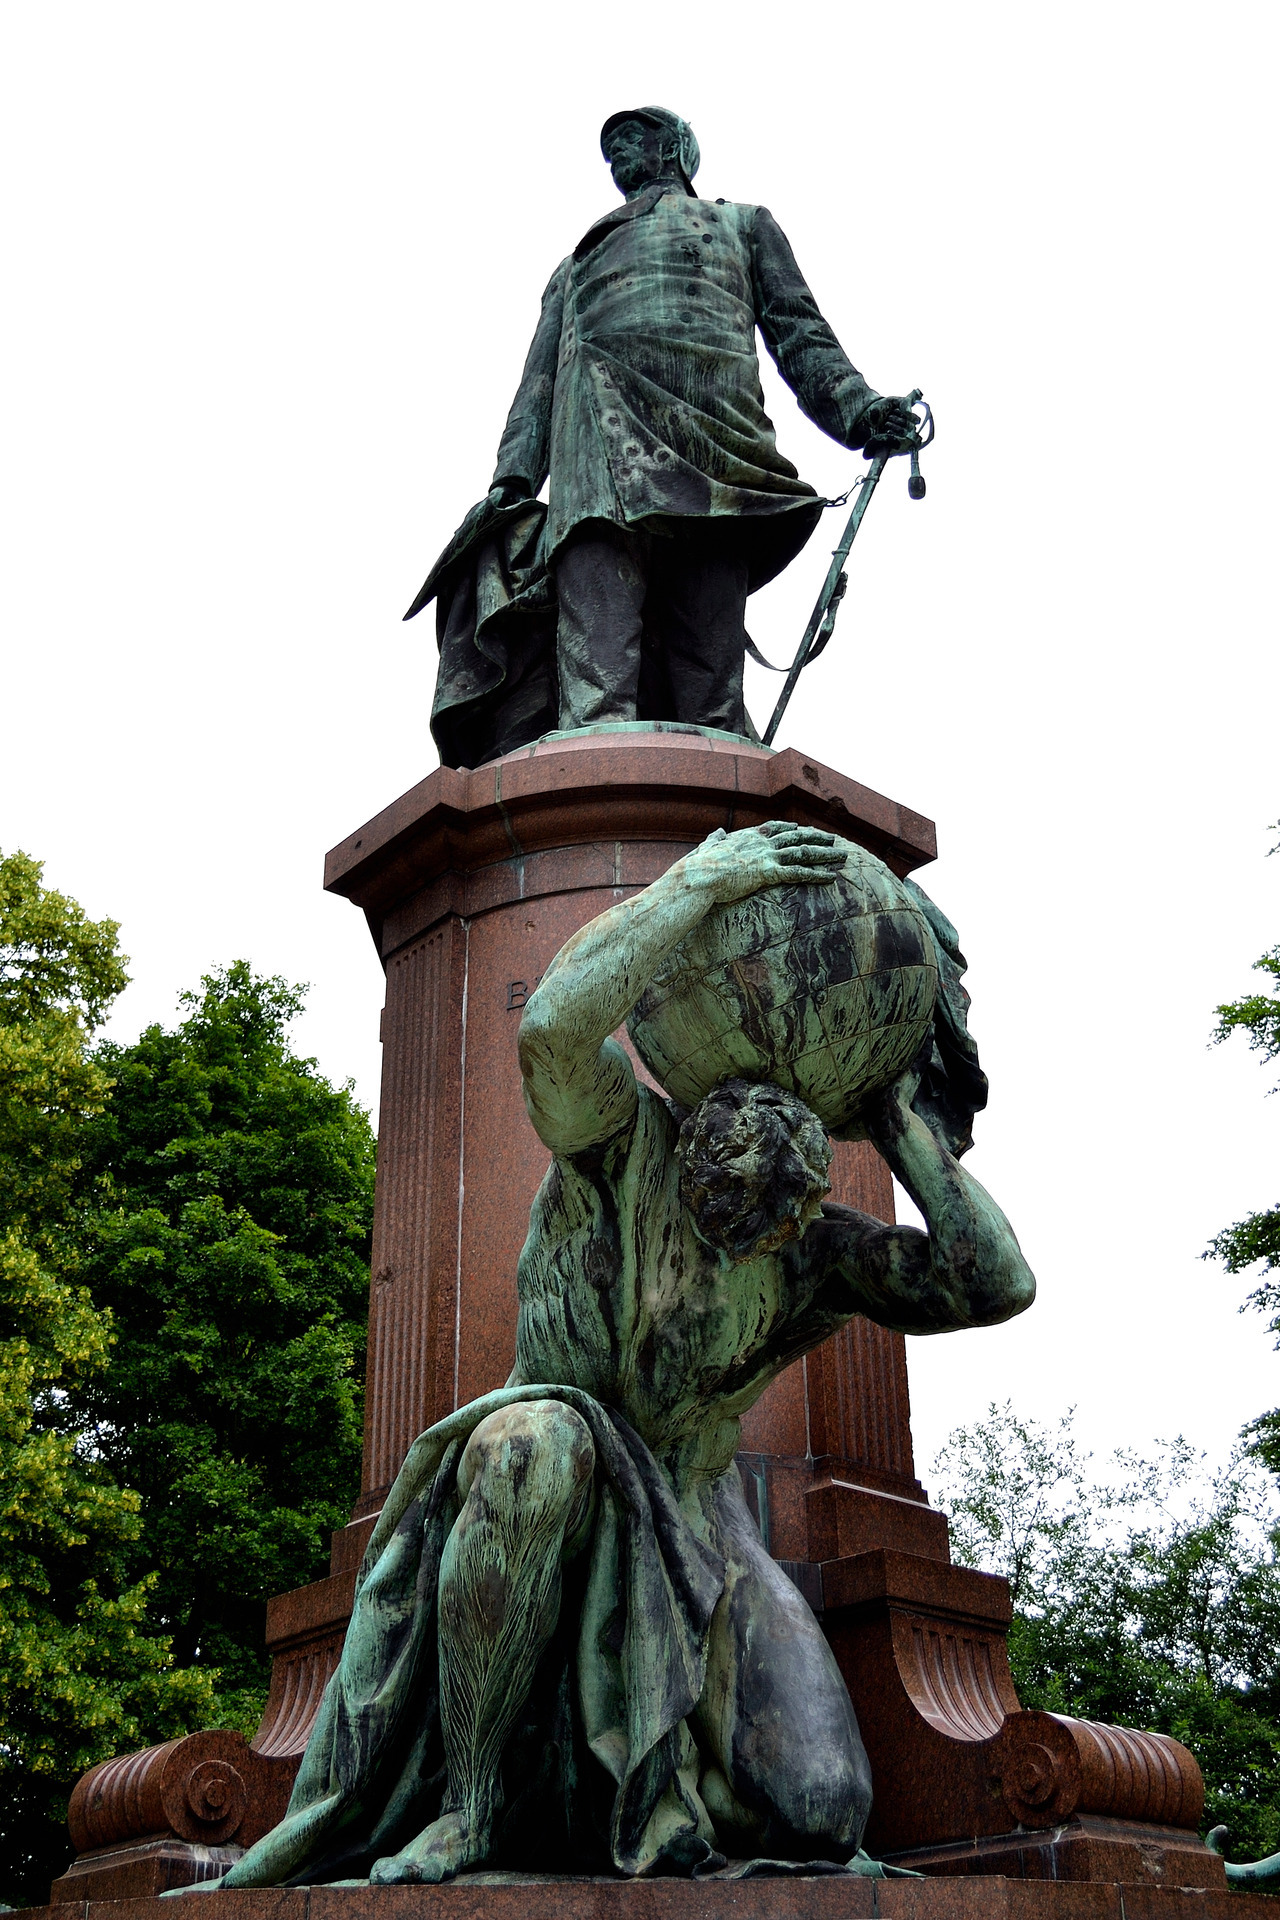 Statue of Bismark with Atlas at his feet, Berlin.